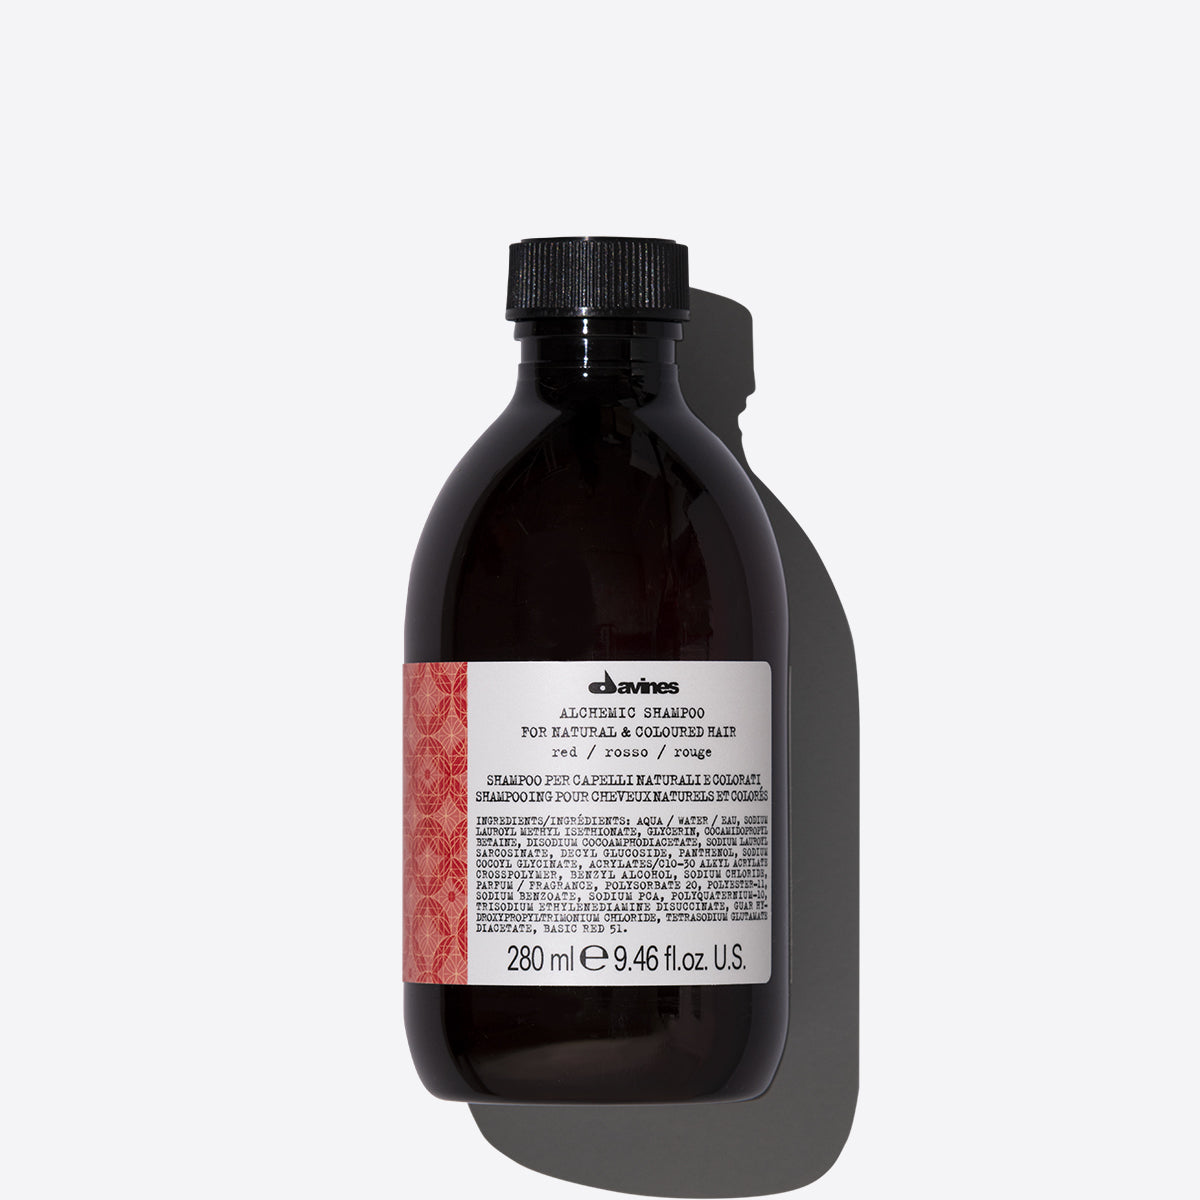 ALCHEMIC Shampoo Red 1  Davines